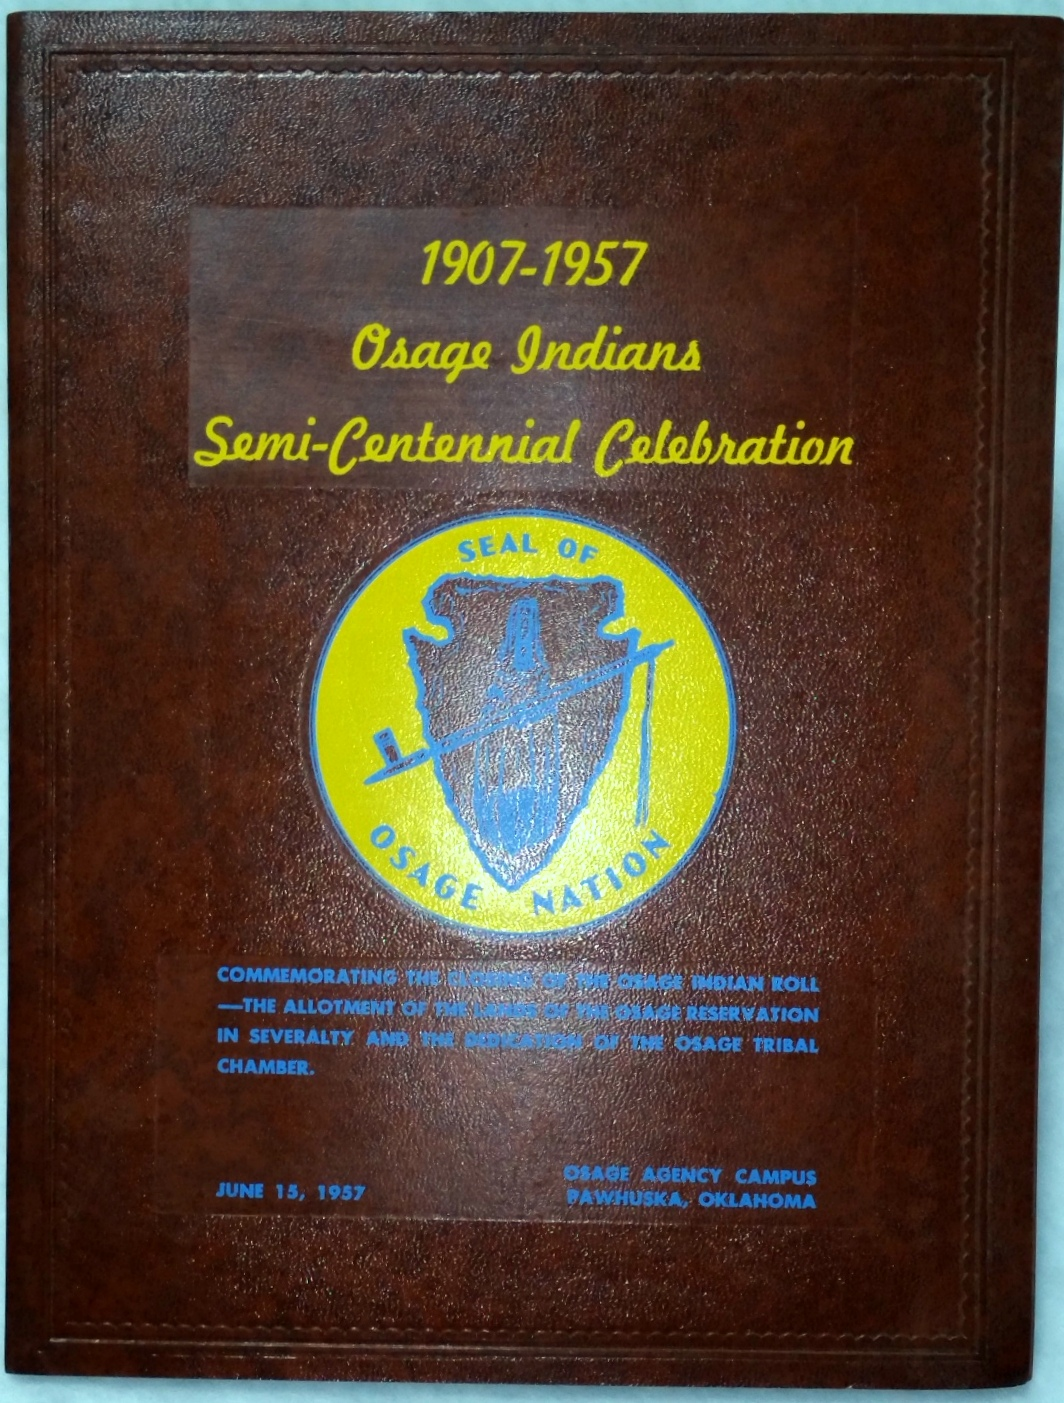 Image for 1907-1957 Osage Indians Semi-Centennial Celebration Commemorating the Closing of the Osage Indian Roll -- The Allotment of the Lands of the Osage Reservation in Severalty and the Dedication of the Osage Tribal Chamber